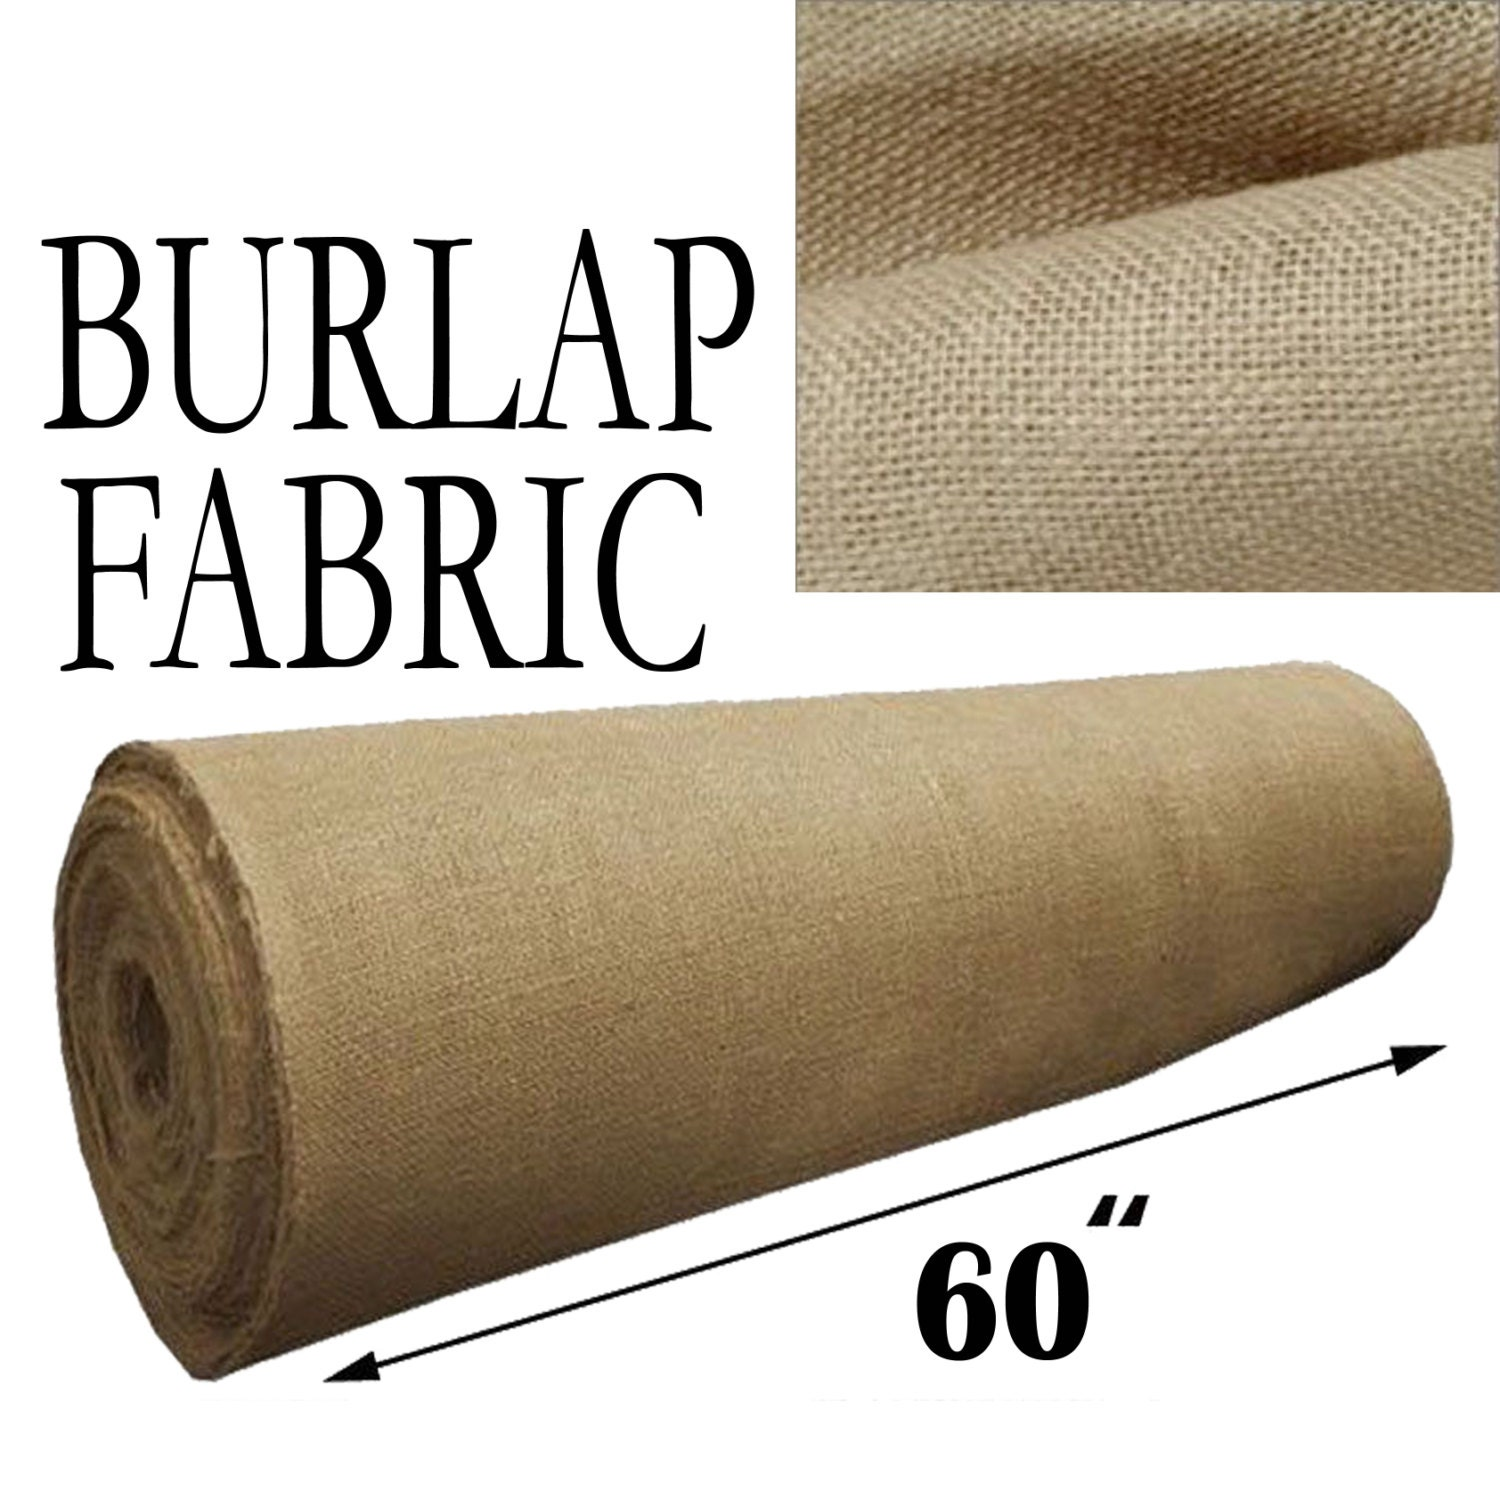 Burlap jute fabric 60 wide premium 10oz natural 10 for What is burlap material